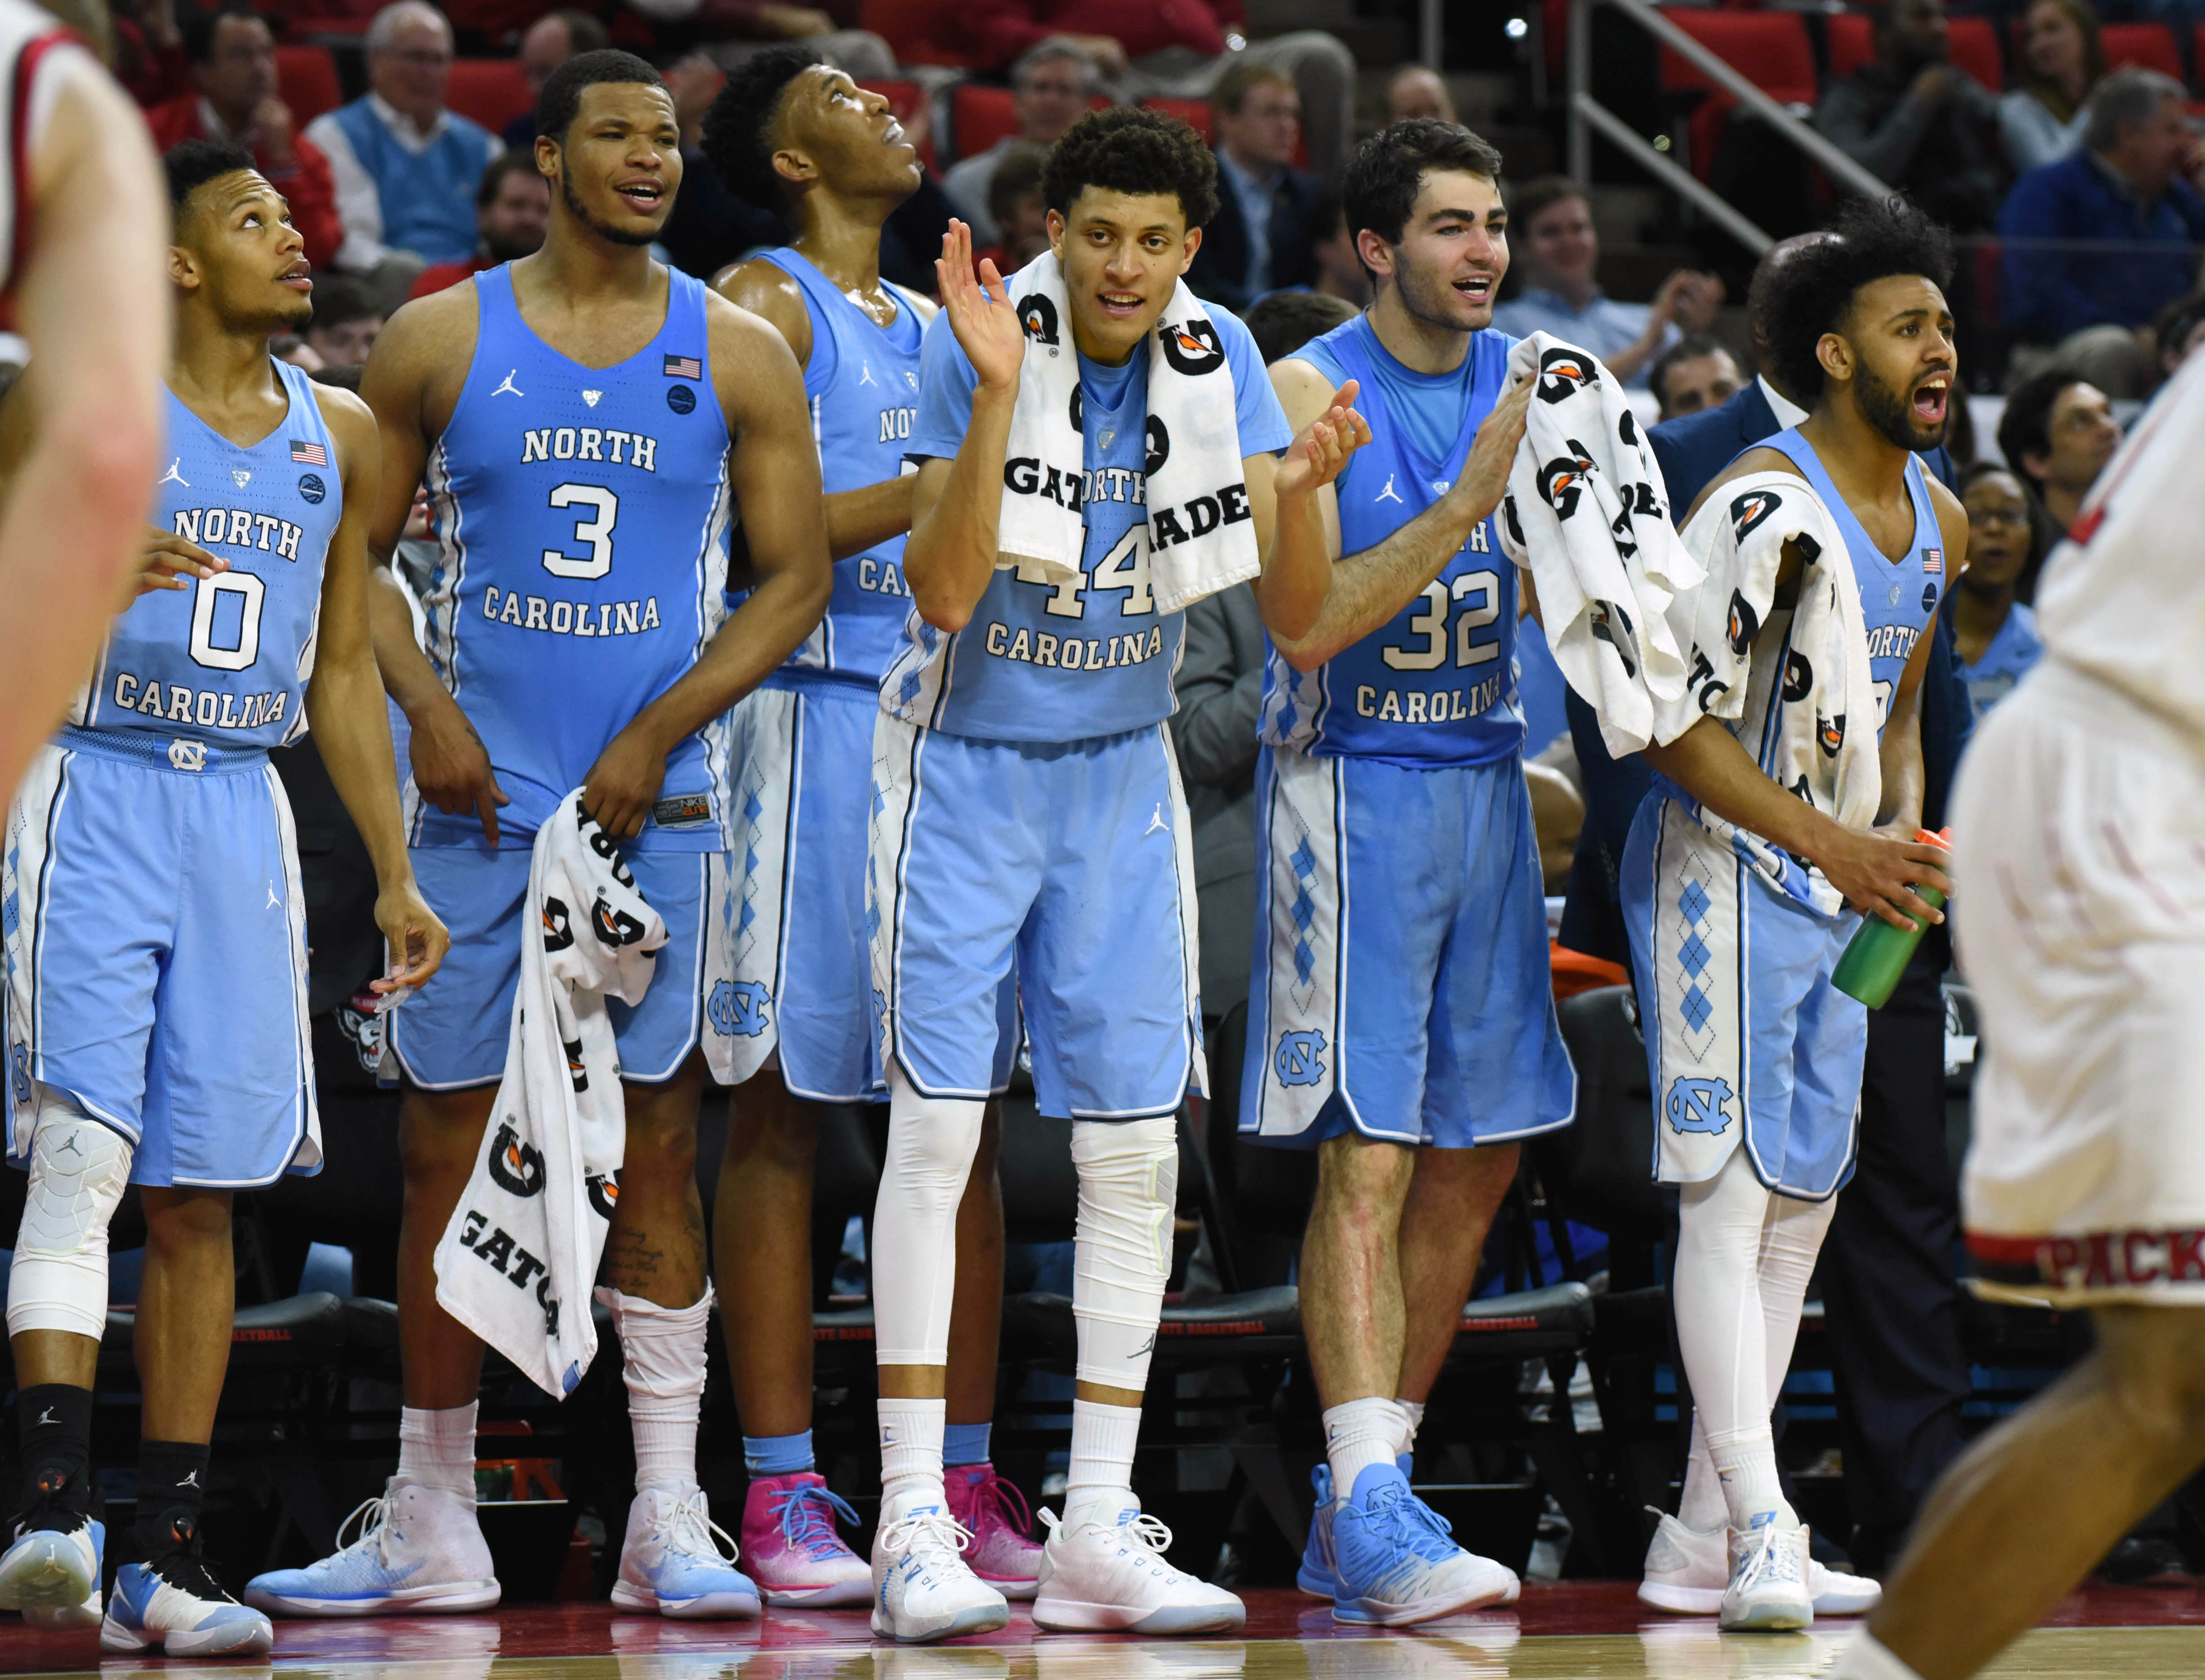 Unc Basketball Schedule | Basketball Scores